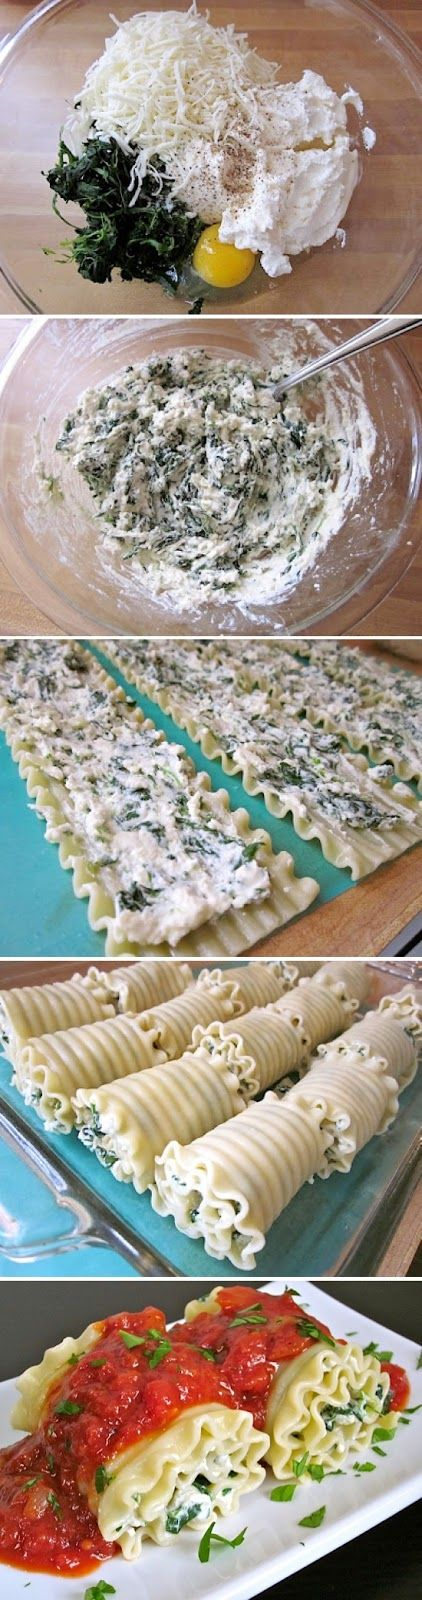 Spinach Lasagna Roll Ups Recipe - Budget Minded Meal | The Homestead Survival